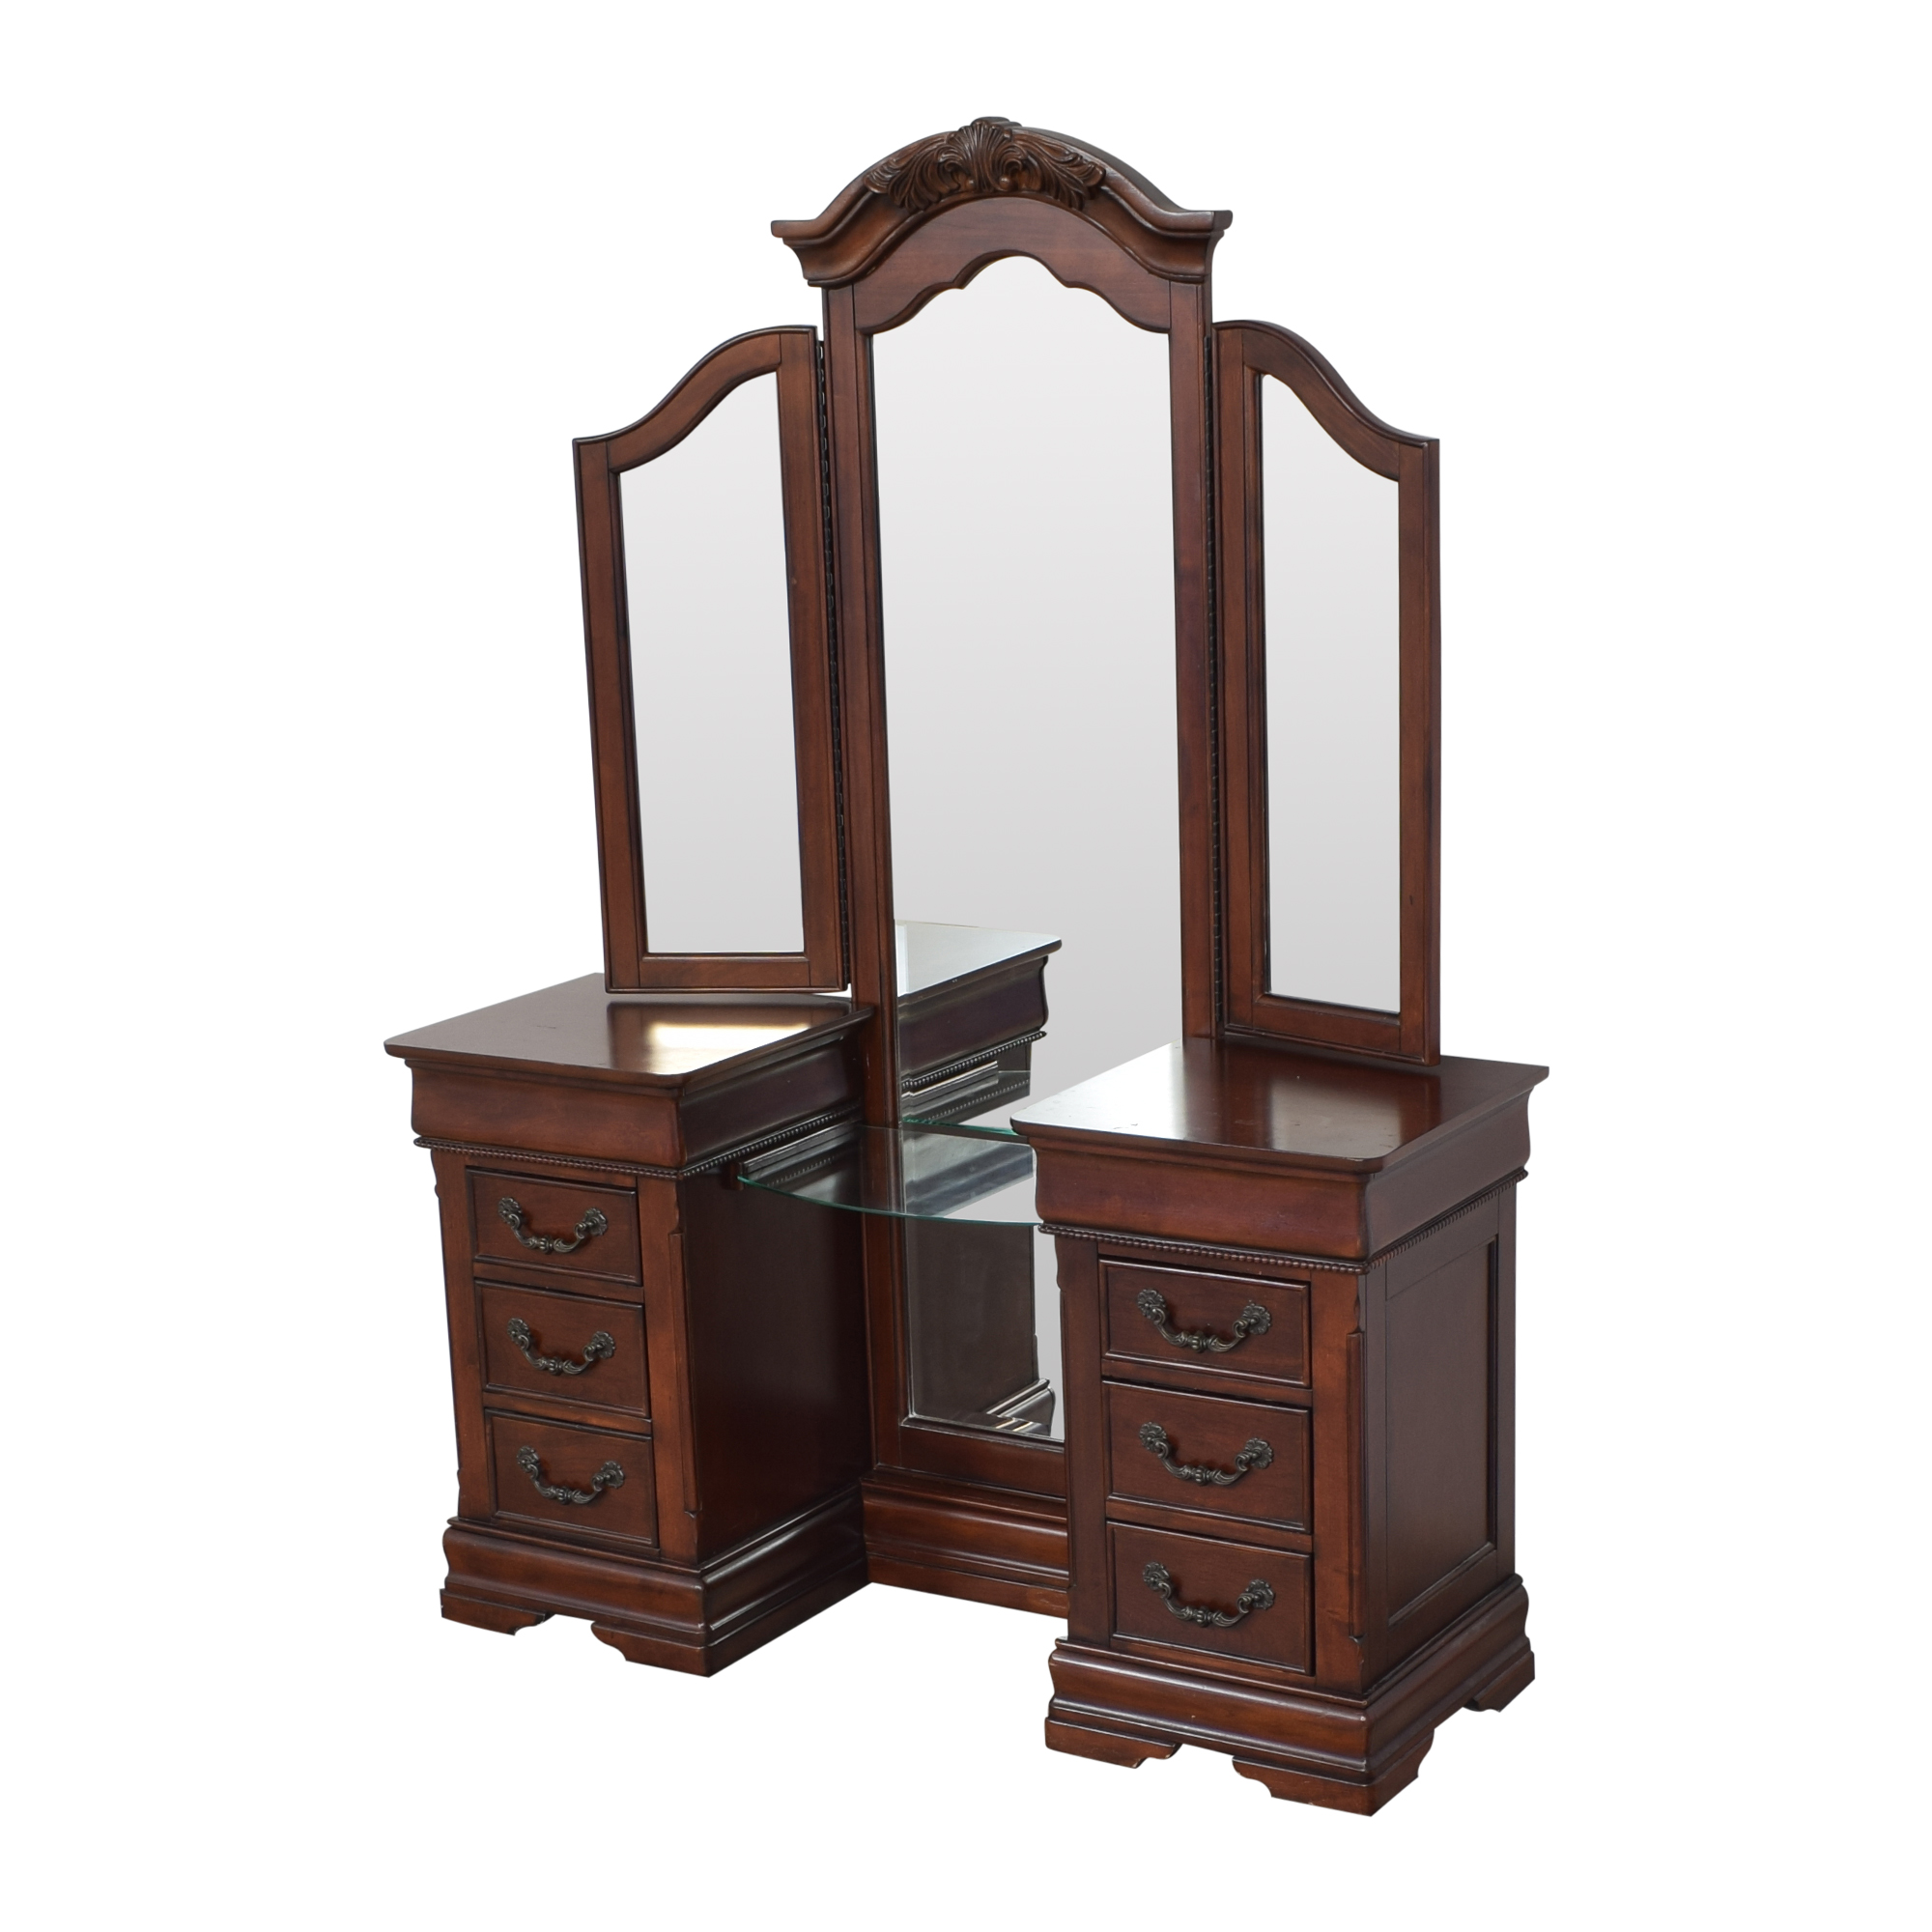 Poh Huat Furniture Vanity Table for sale